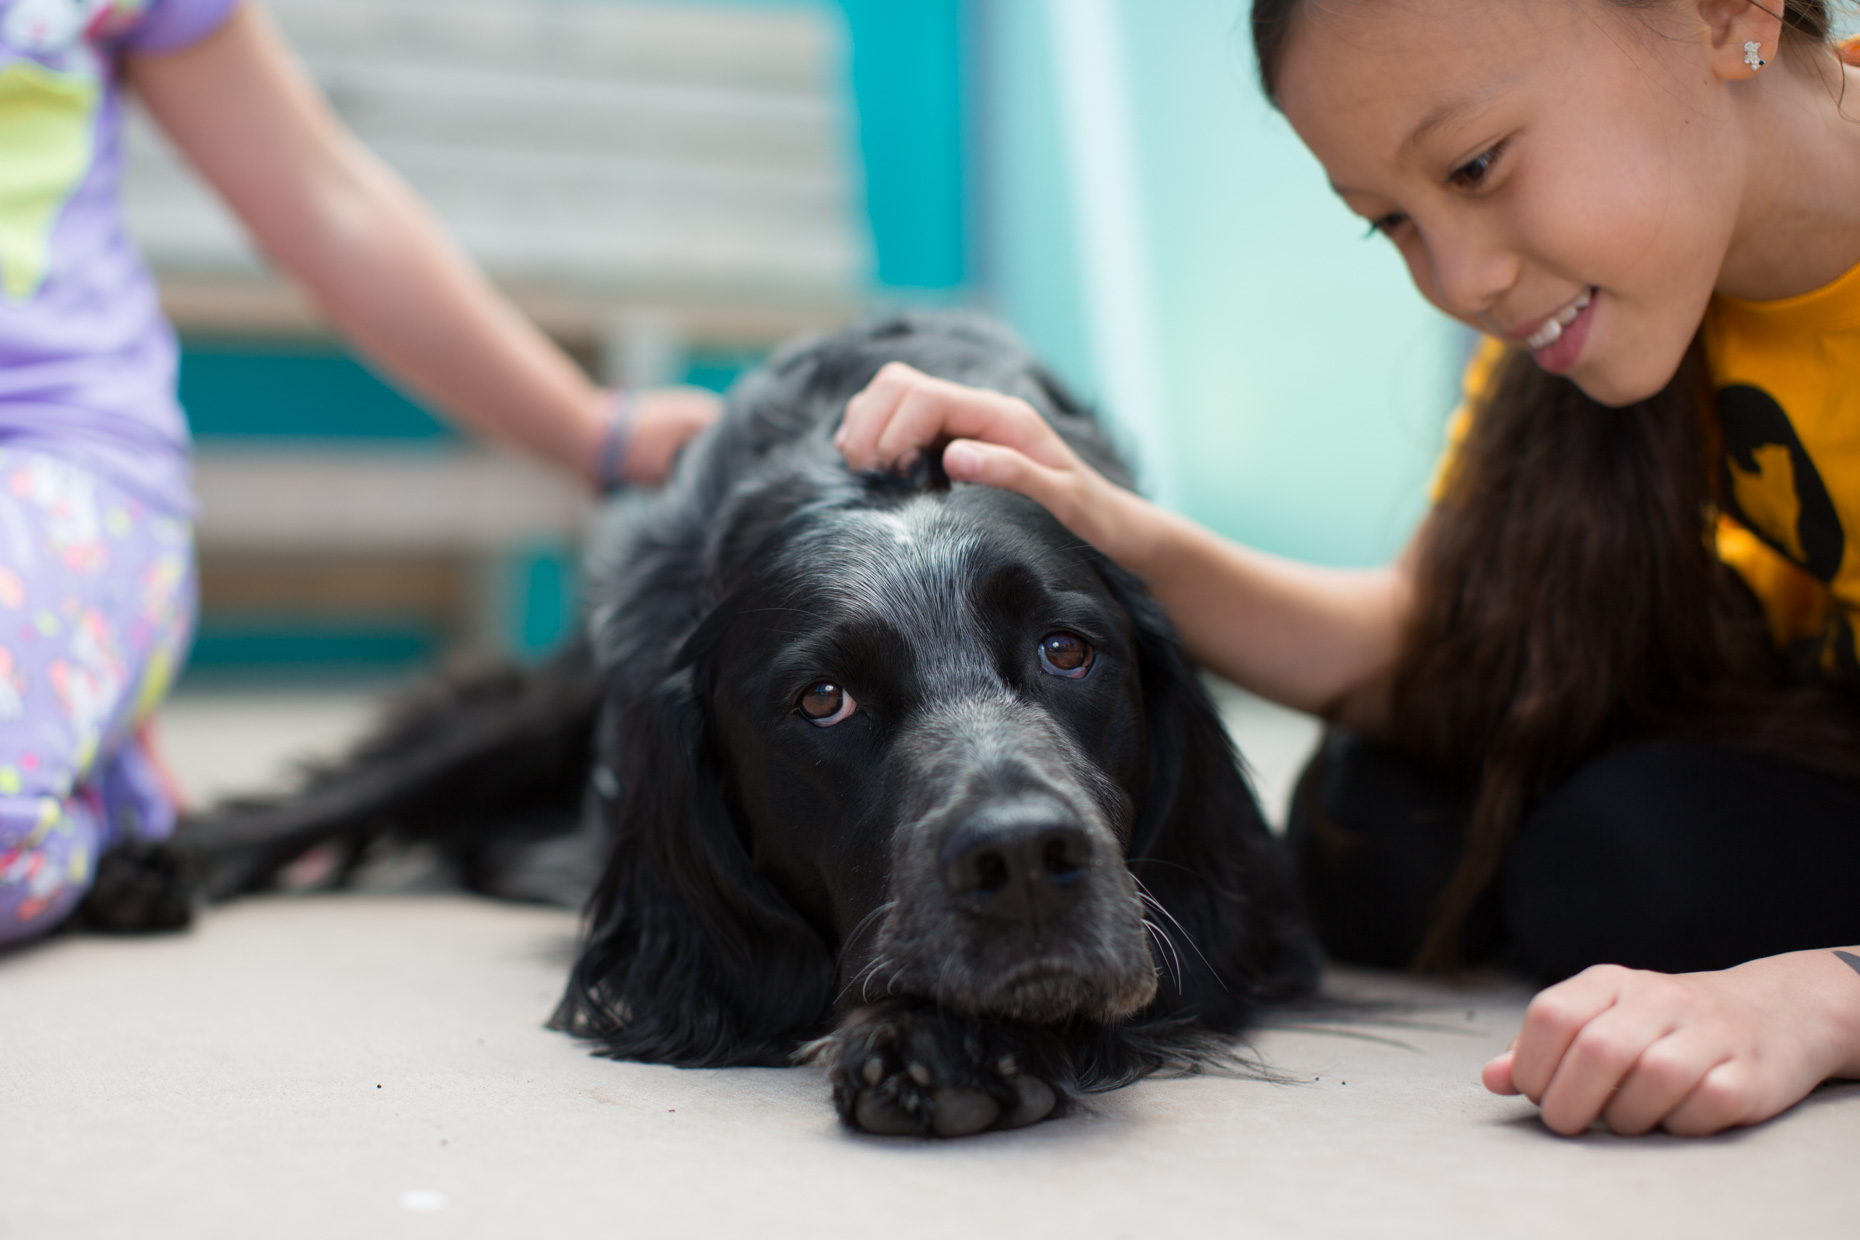 Pet Lifestyle Photography | Girl Petting Dog by Mark Rogers